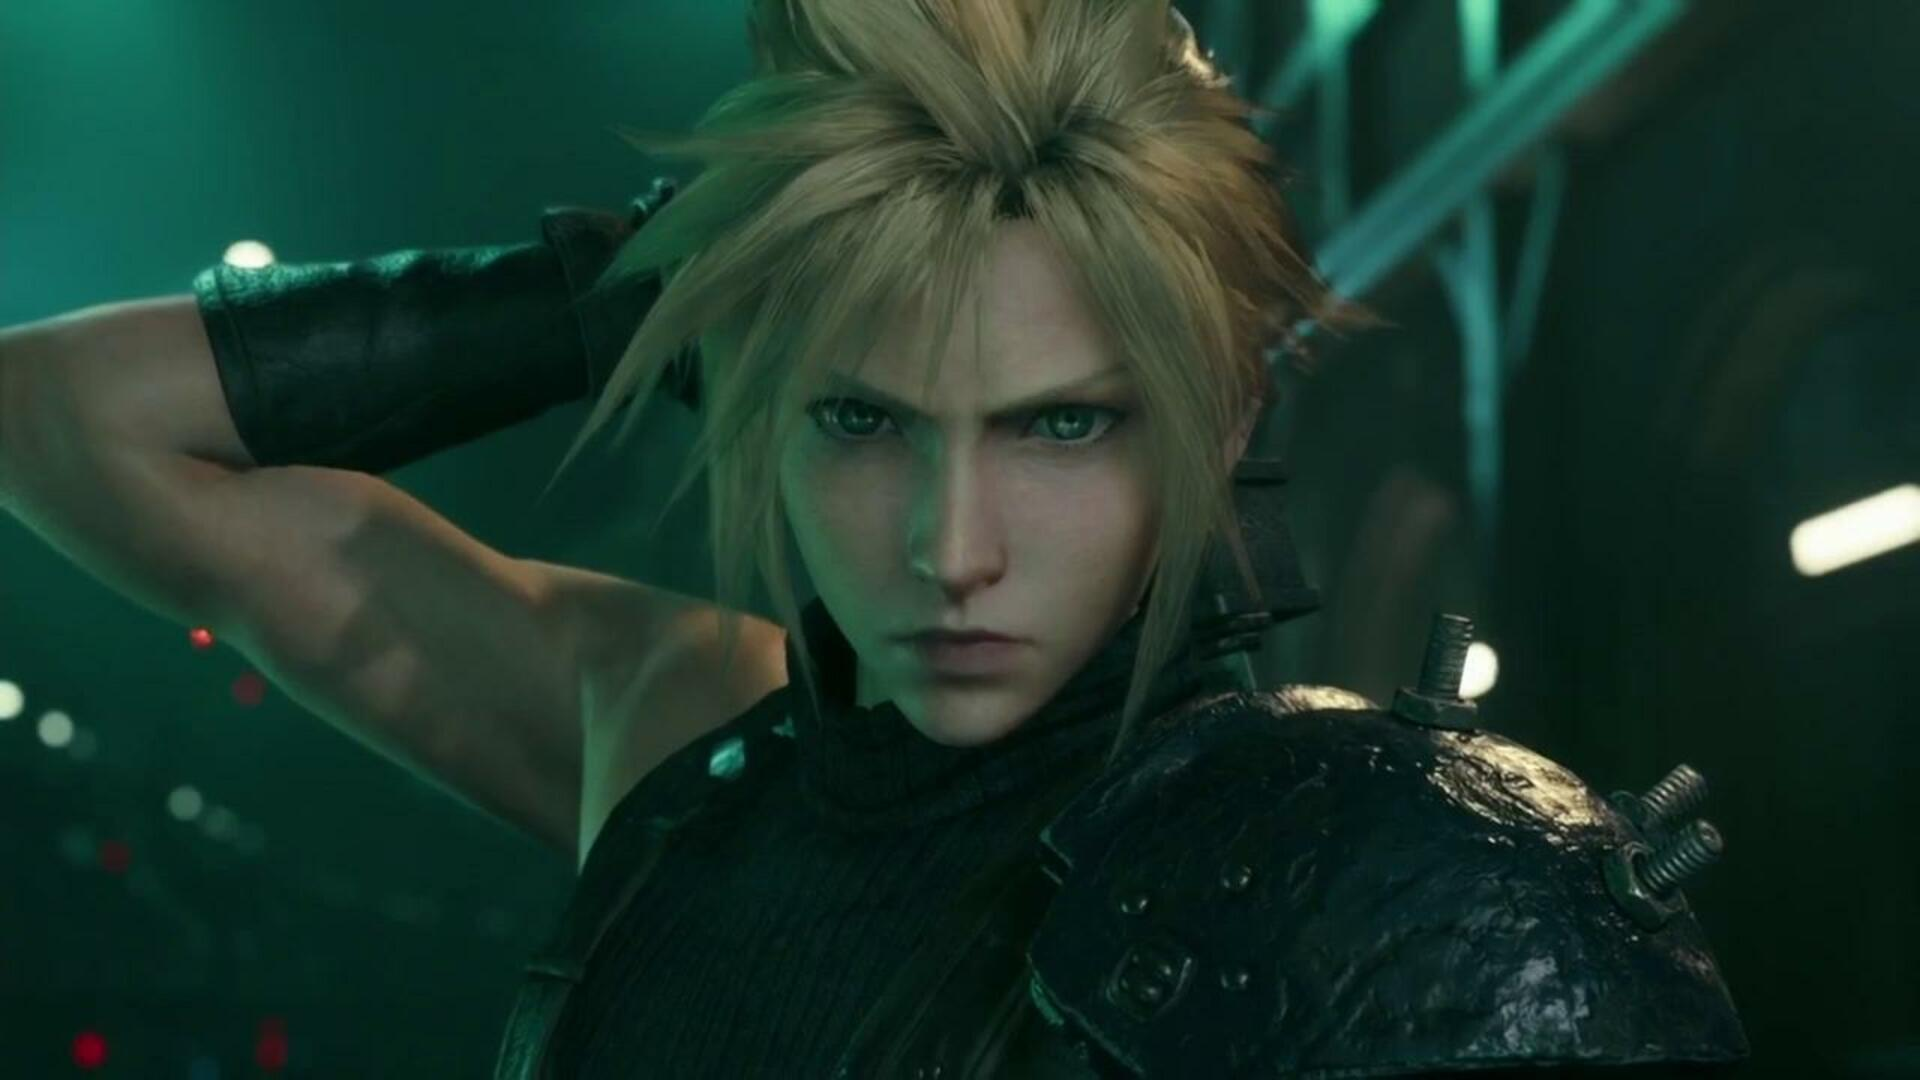 Final Fantasy 7 Remake New Details: Original Events, Honey Bee Inn Cross-Dressing, and More